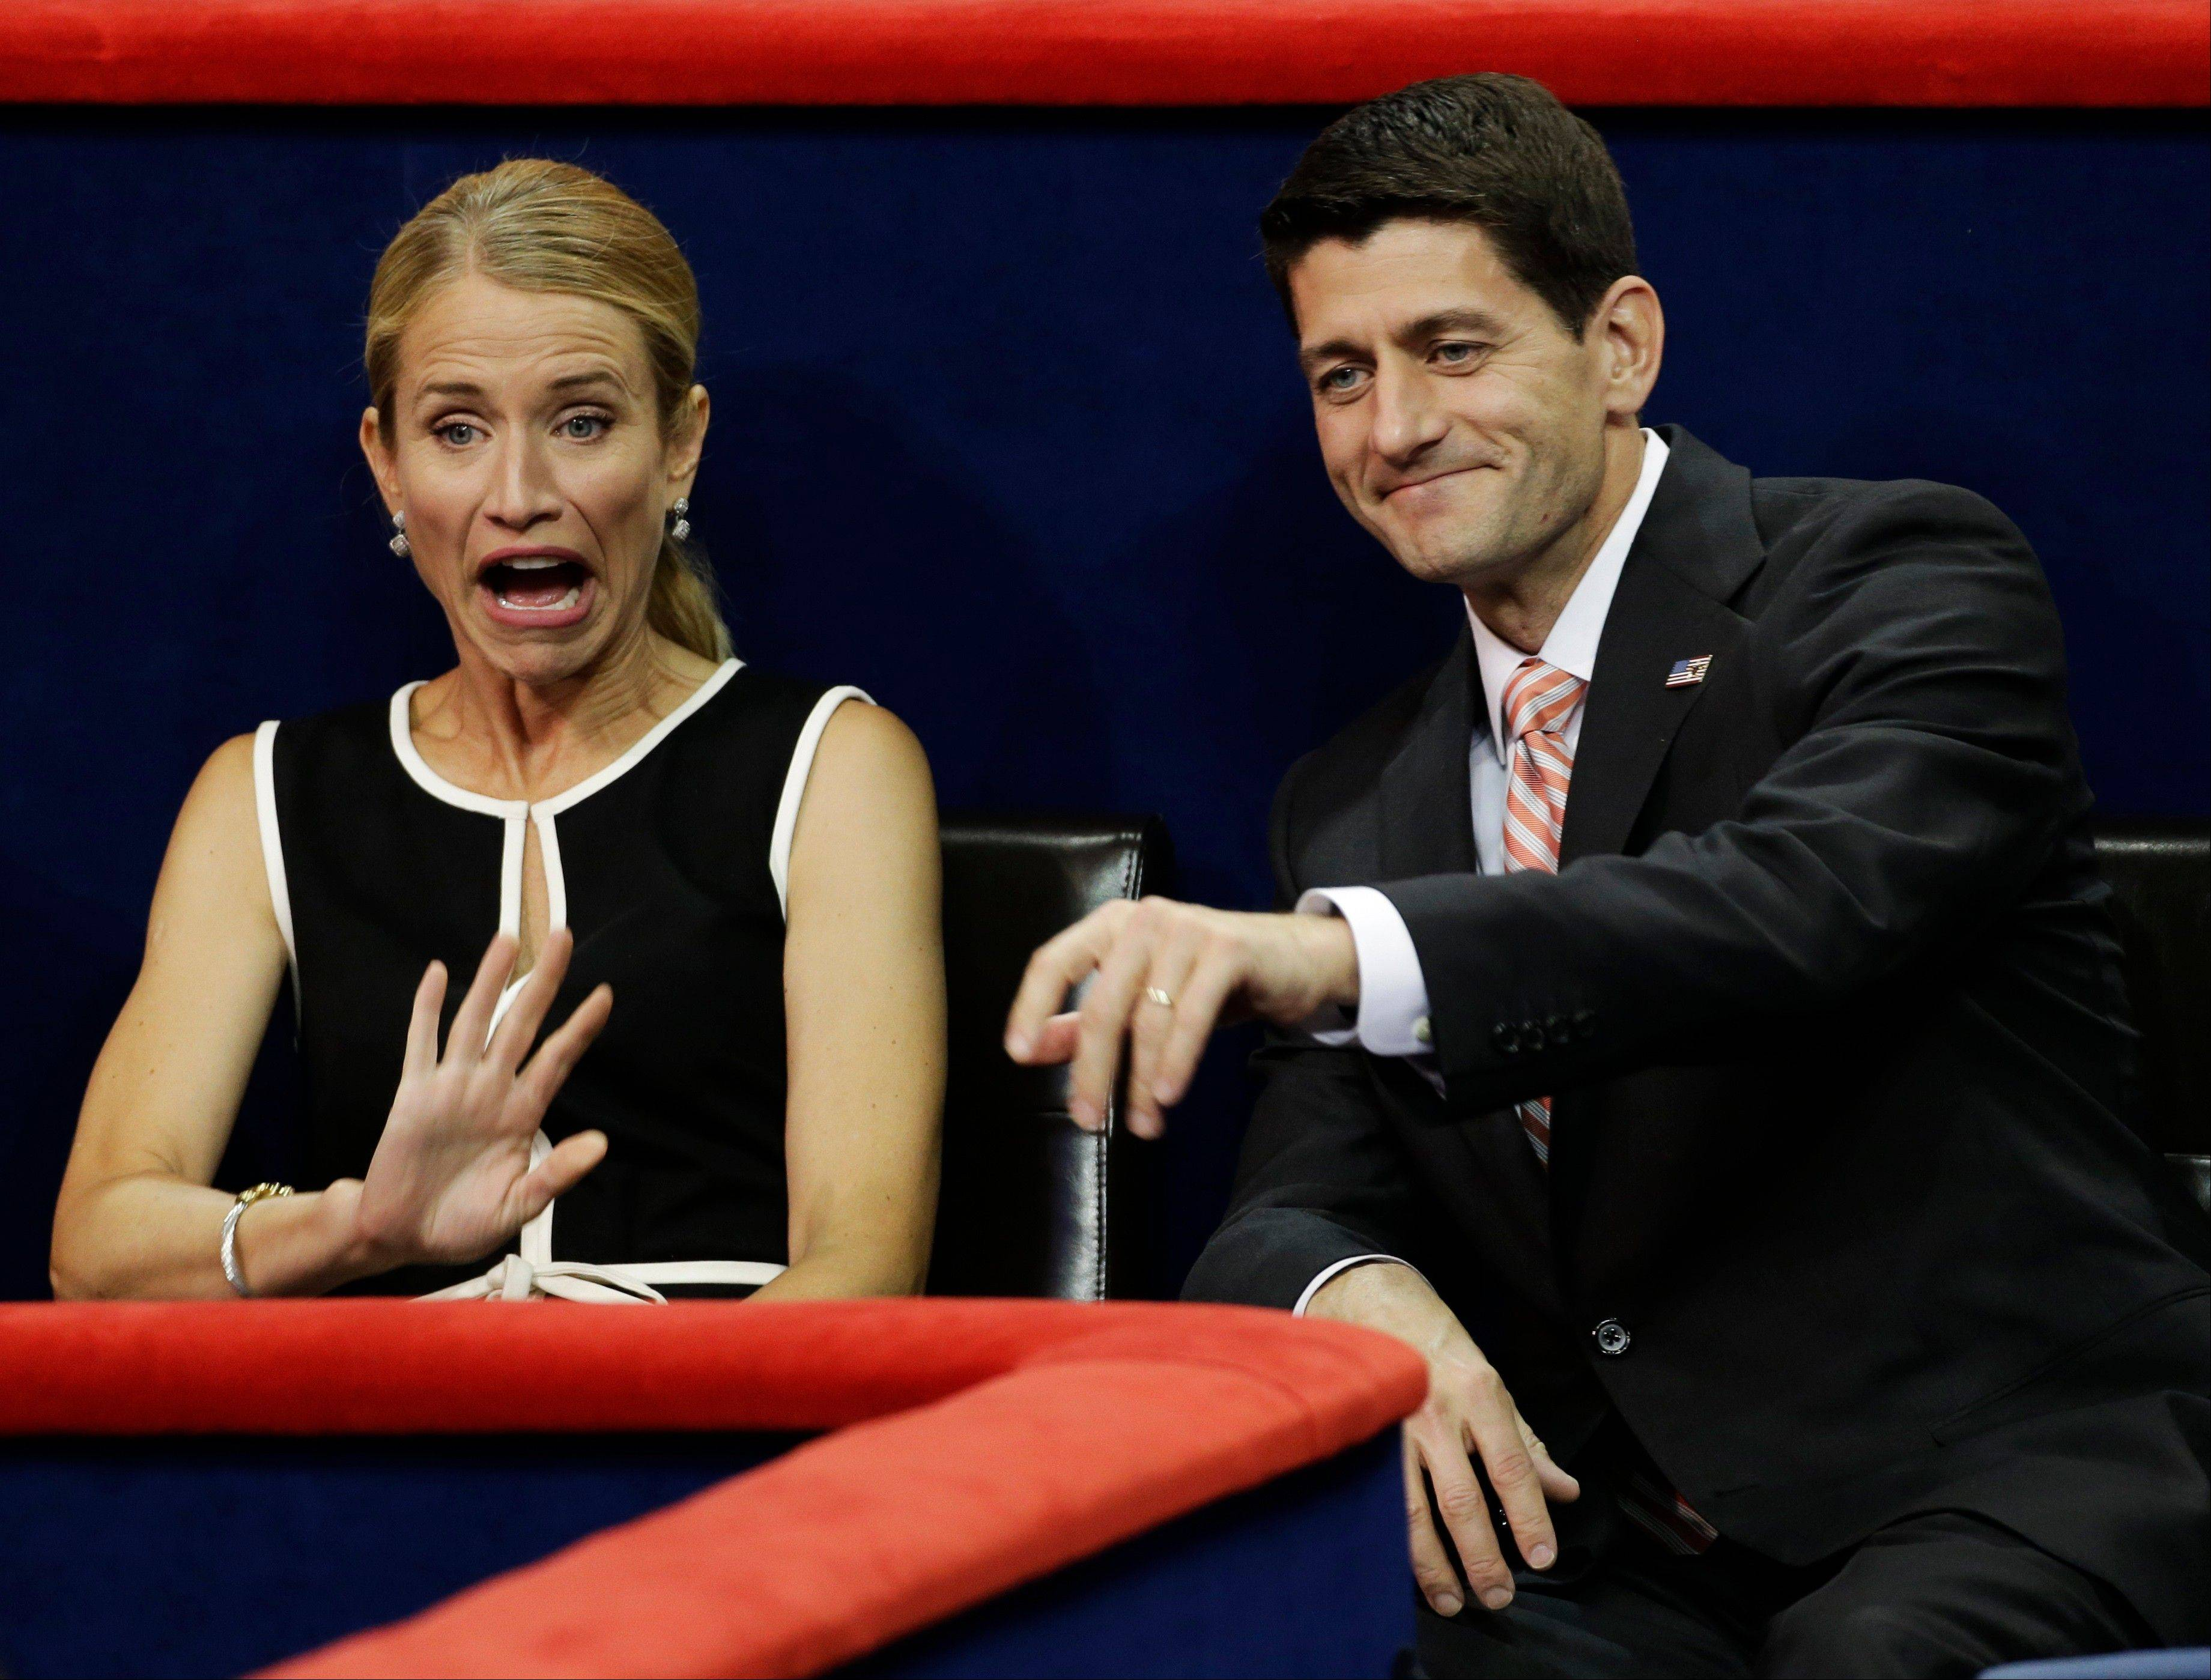 Republican vice presidential nominee, Rep. Paul Ryan and his wife Janna waves to delegates during the Republican National Convention in Tampa, Fla., on Thursday, Aug. 30, 2012.